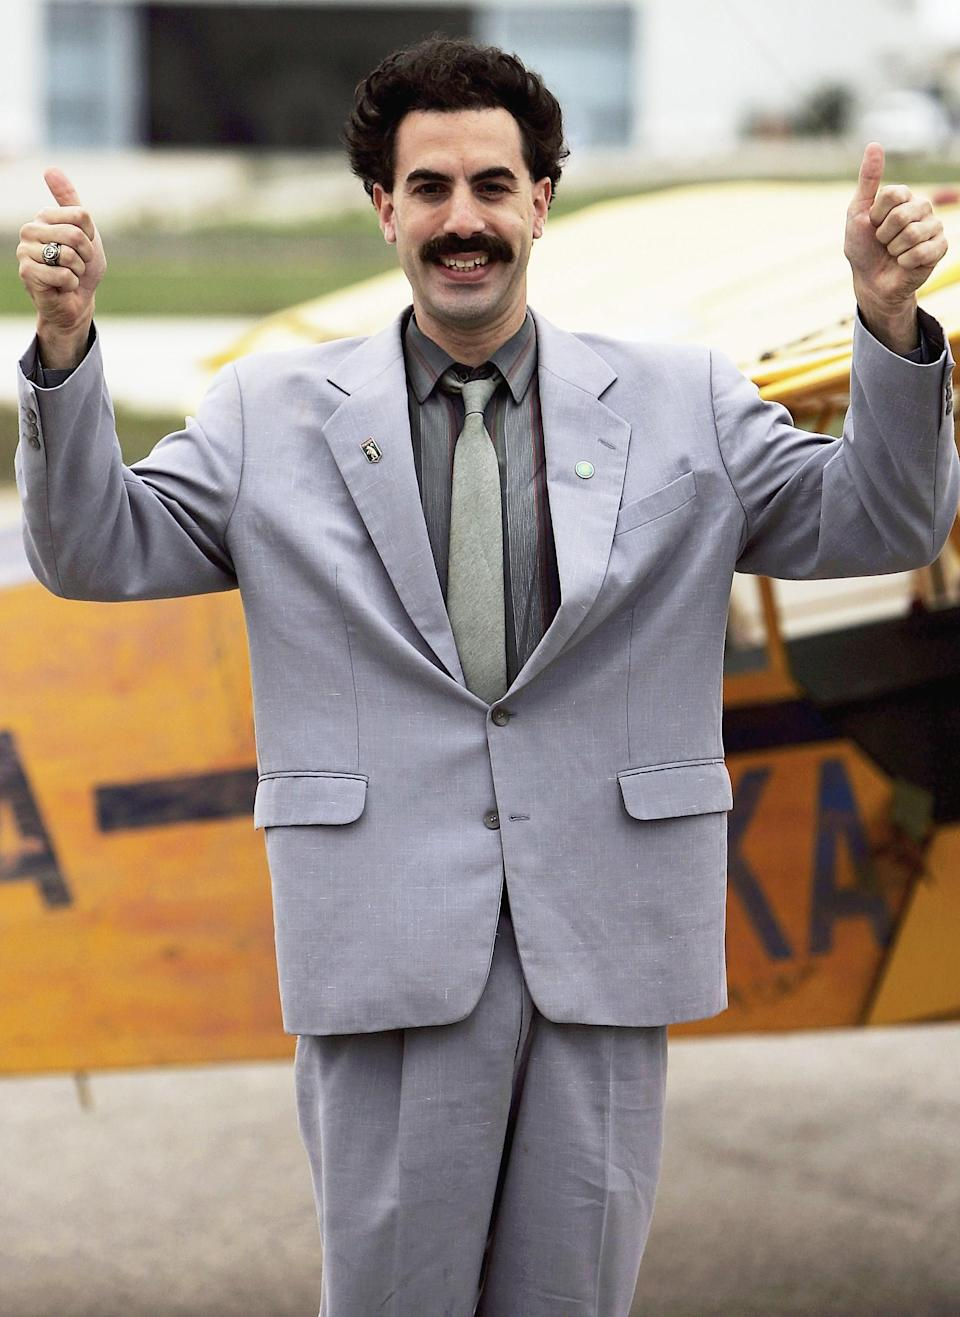 """Sacha Baron Cohen playing the part of his comedy character """"Borat"""" lands at a private airfield on November 2, 2005 in Lisbon, Portugal. 'Borat' arrived in Lisbon as part of a stunt video for tomorrow nights MTV European Music Awards. (Photo: Bruno Vincent/Getty Images)"""